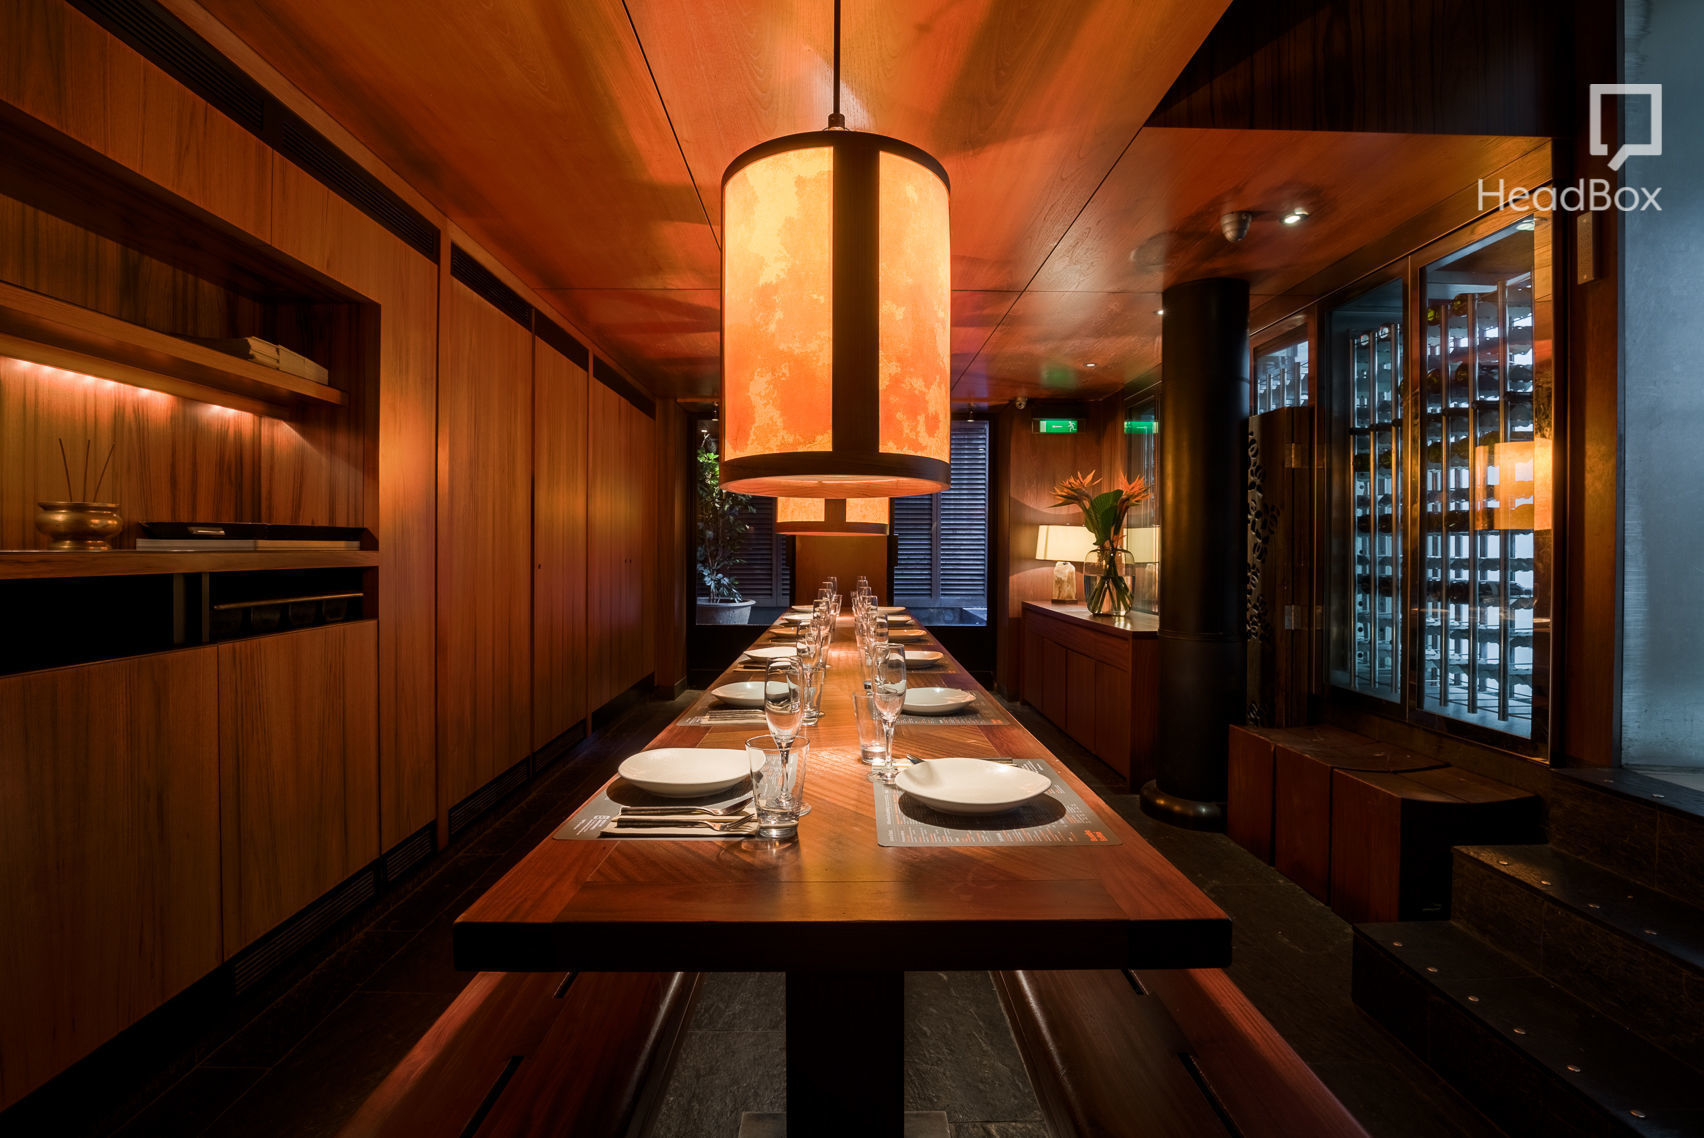 Book Private Dining Room Busaba Eathai Westminster London Headbox